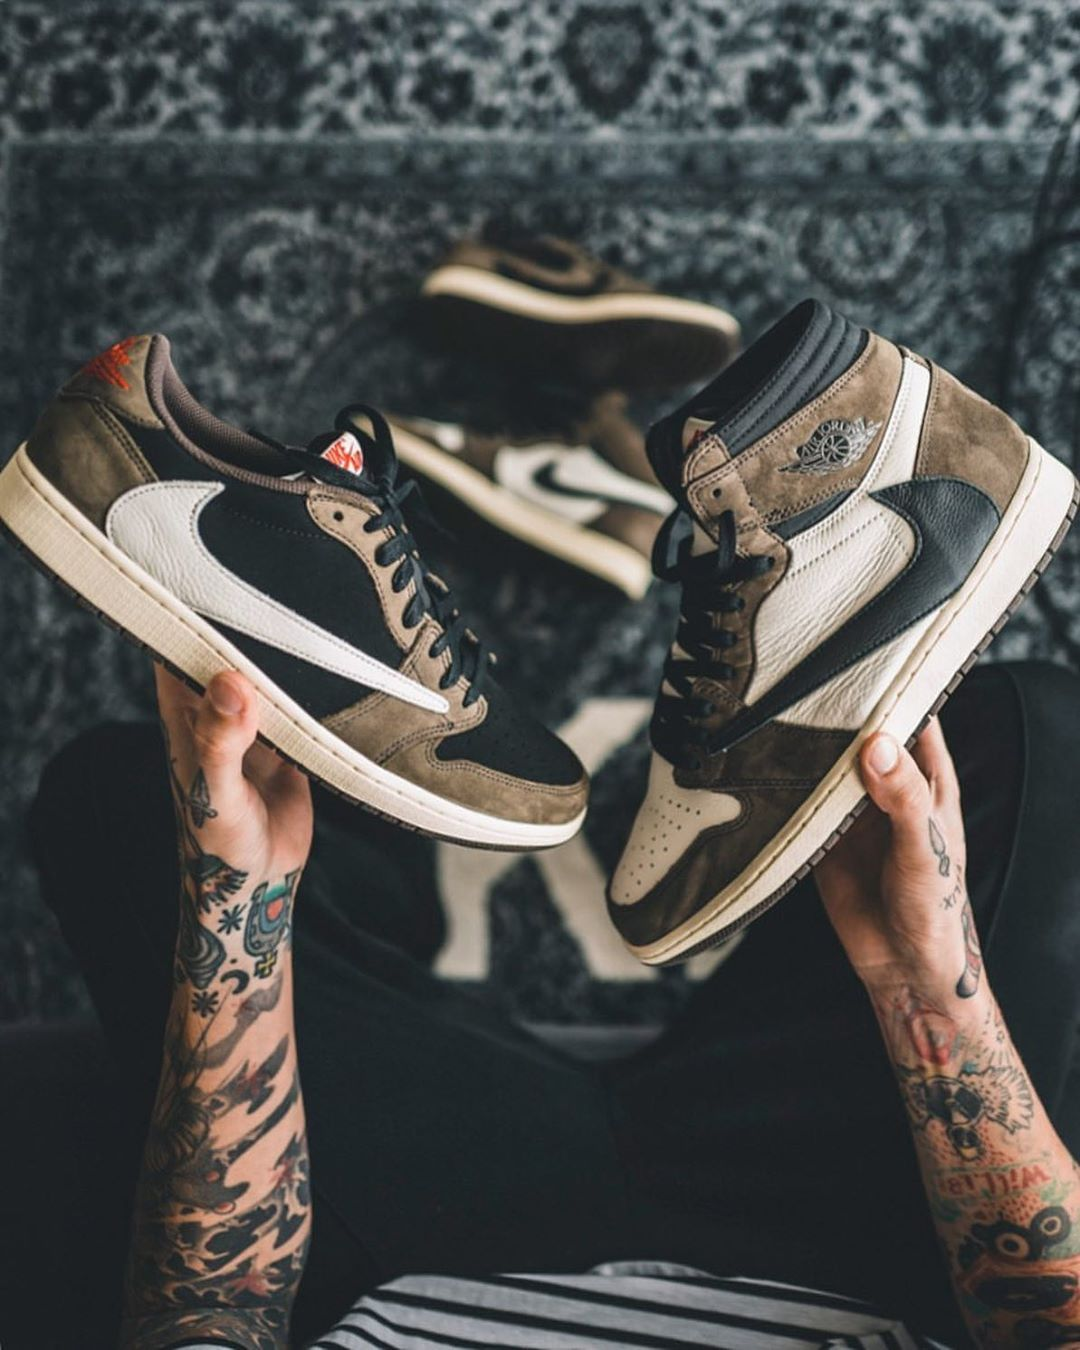 2675 Best Sneakers images in 2020 | Sneakers, Shoes